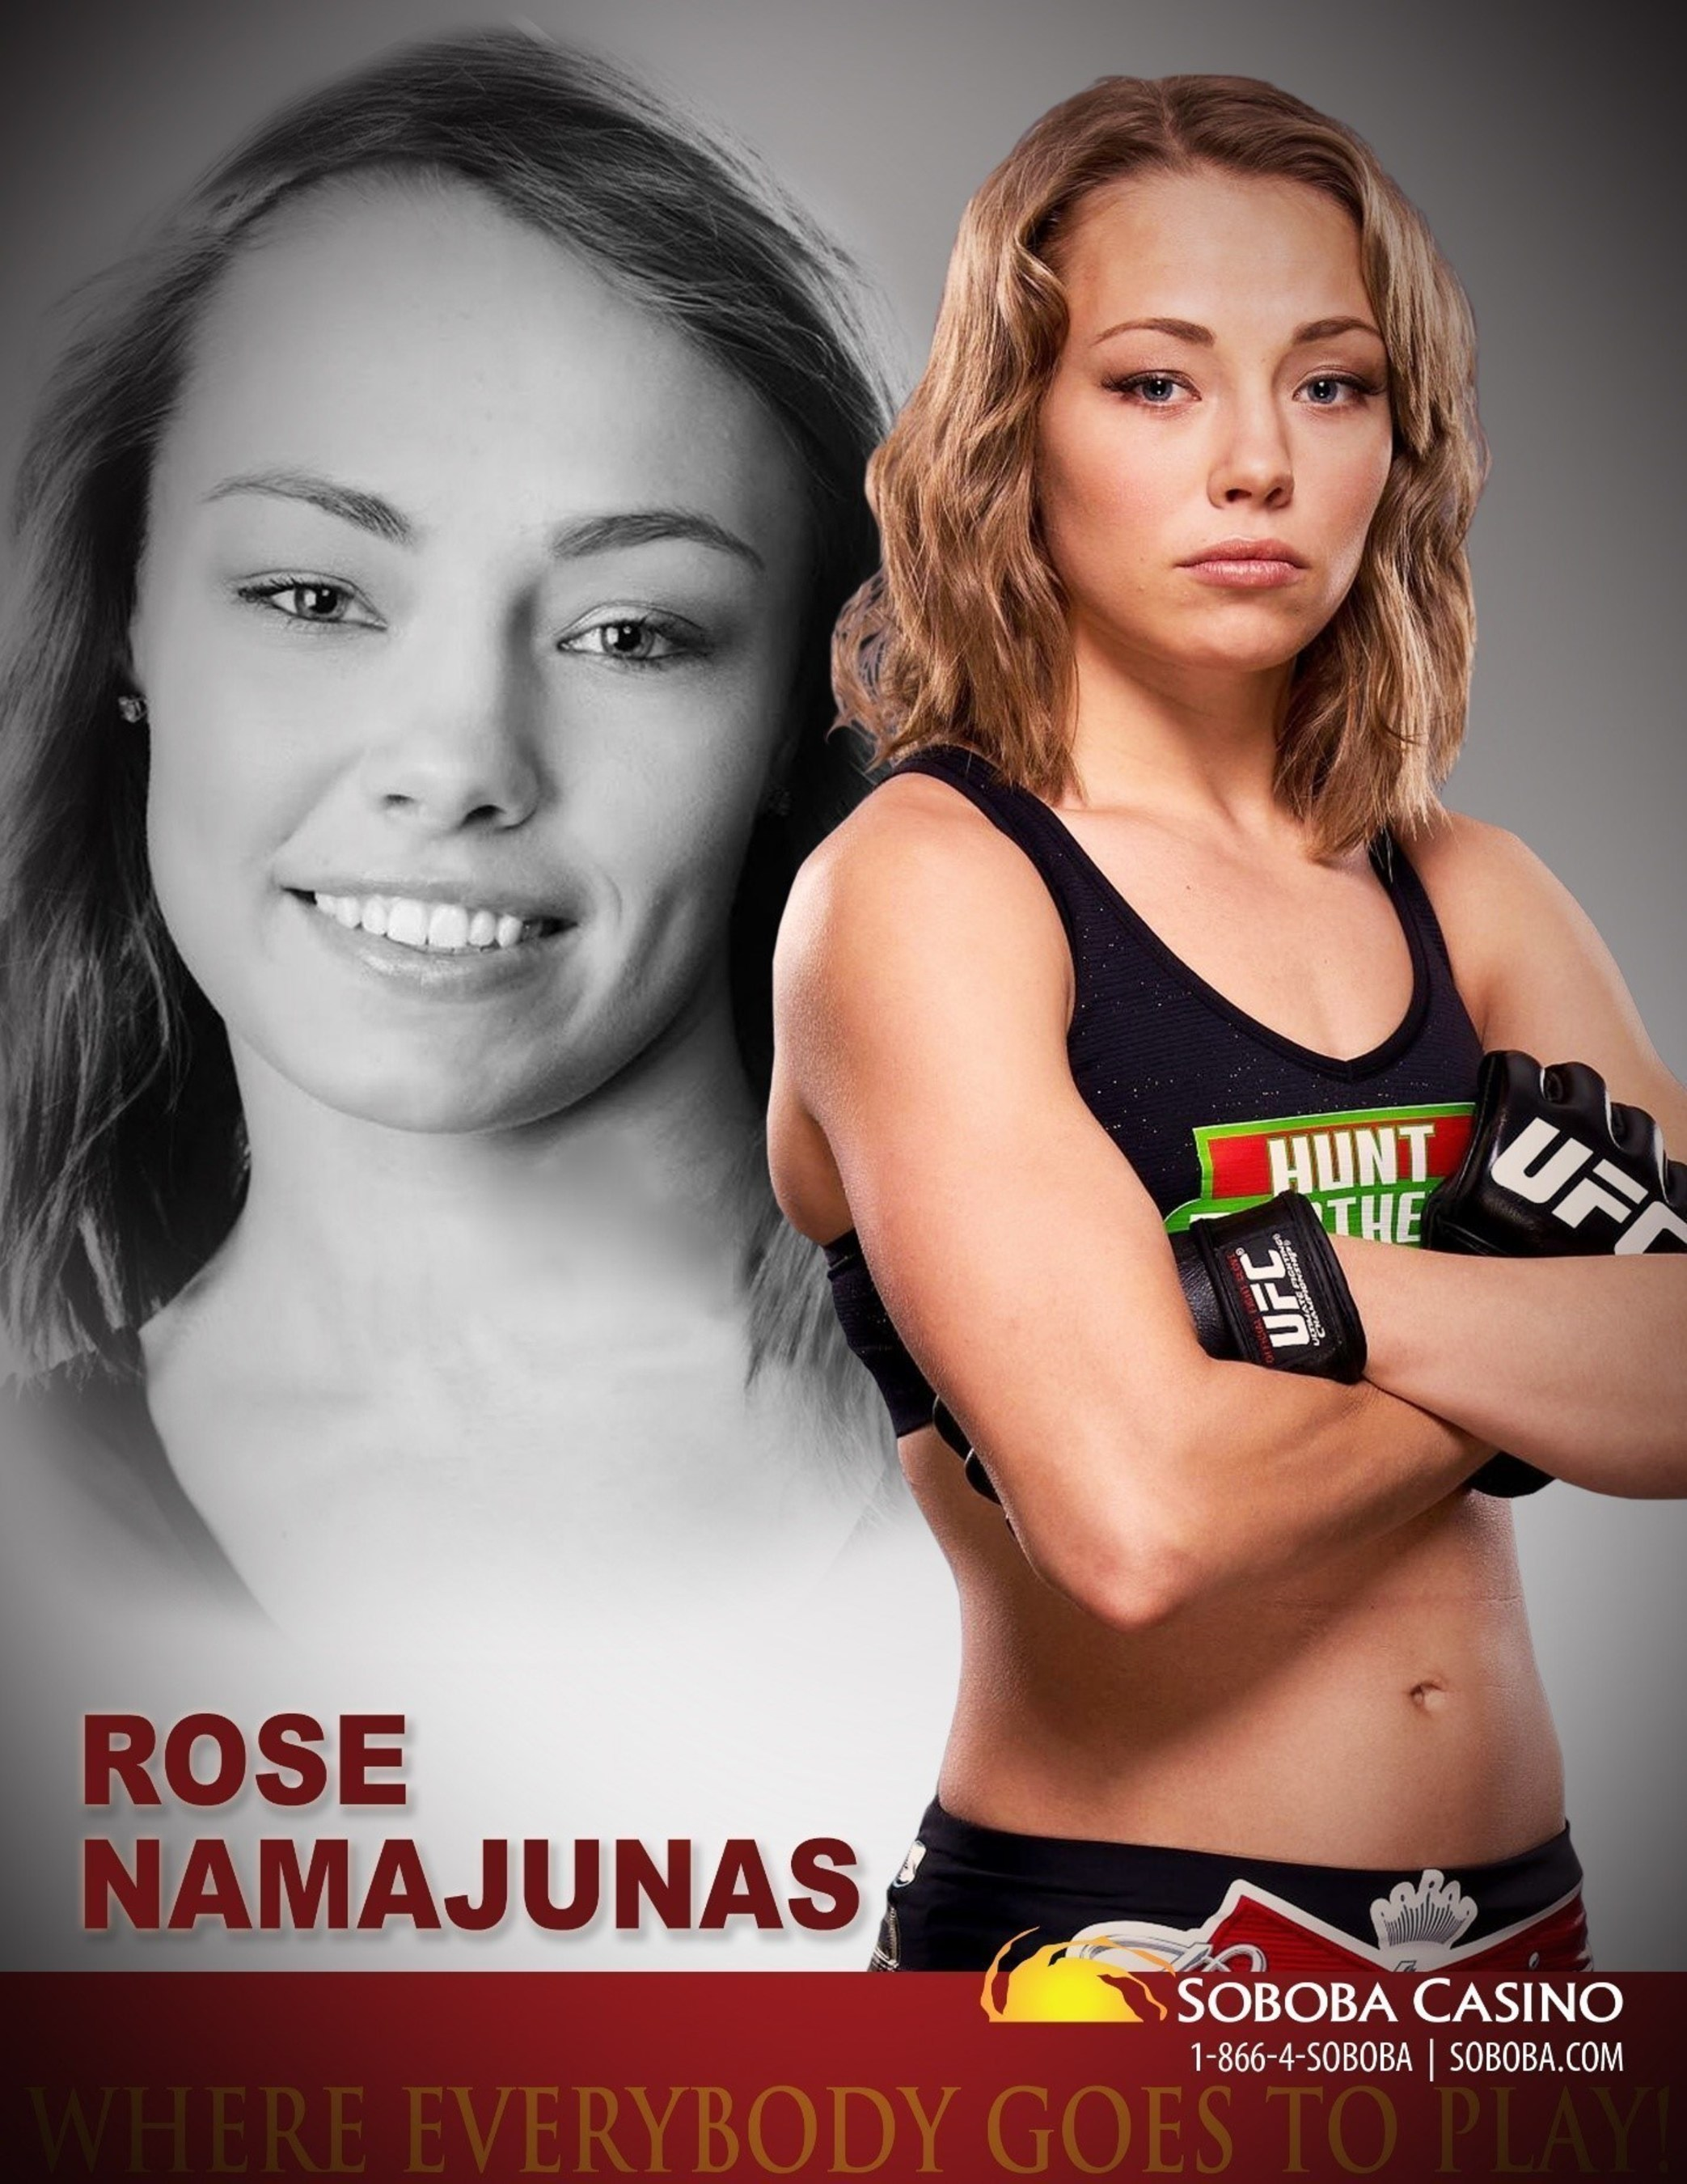 Rose Namajunas Coming to Soboba Casino for Rousey VS Holm